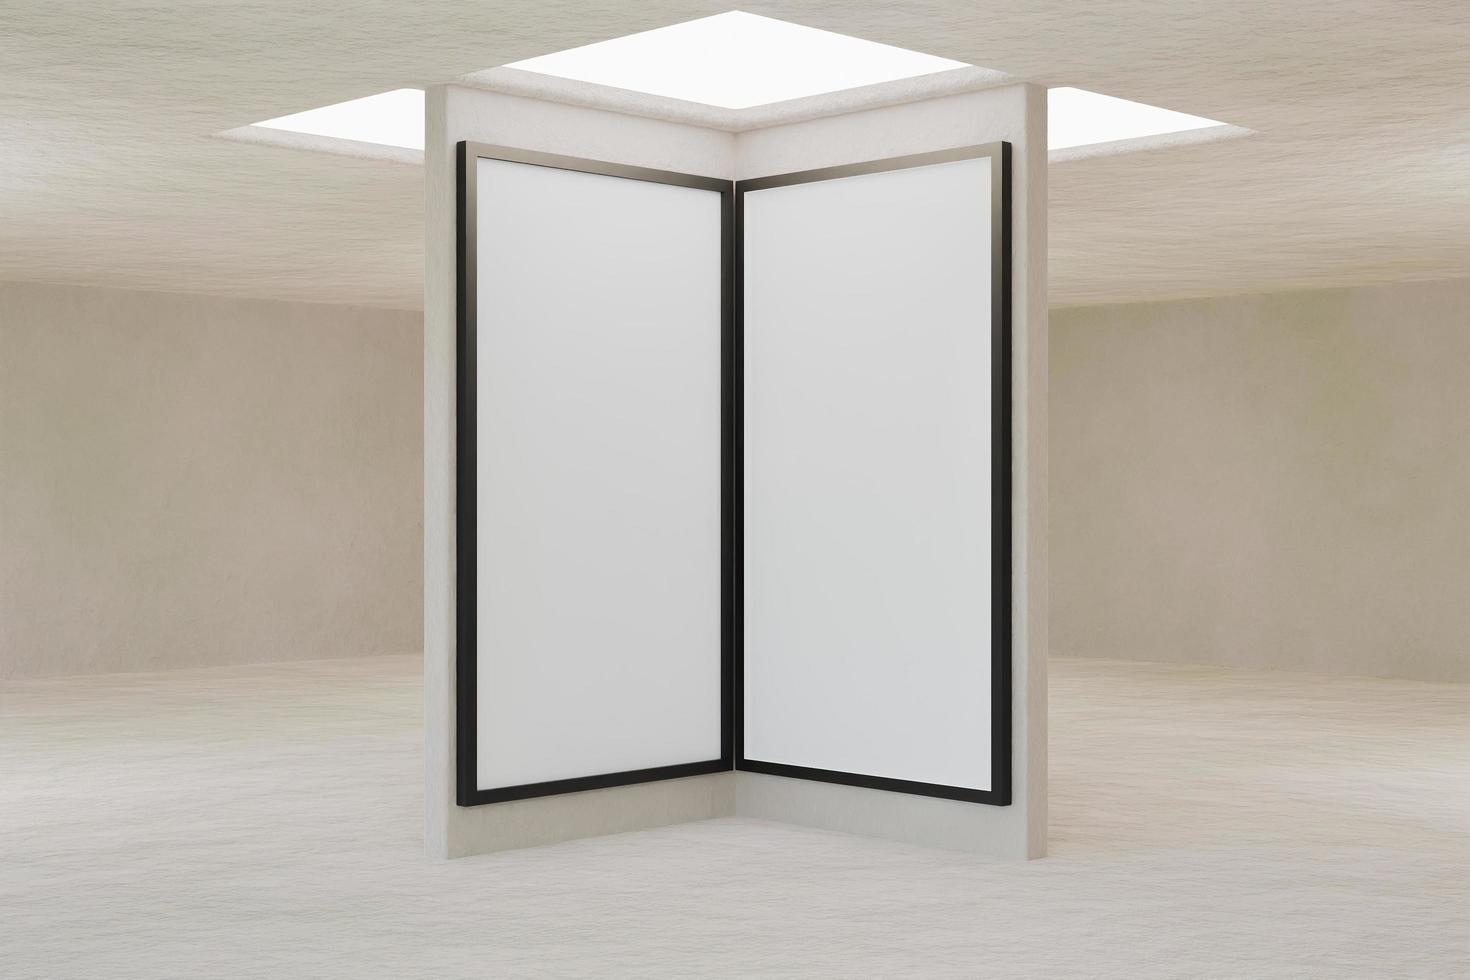 Interior of empty room with roof window and mockup of frames photo